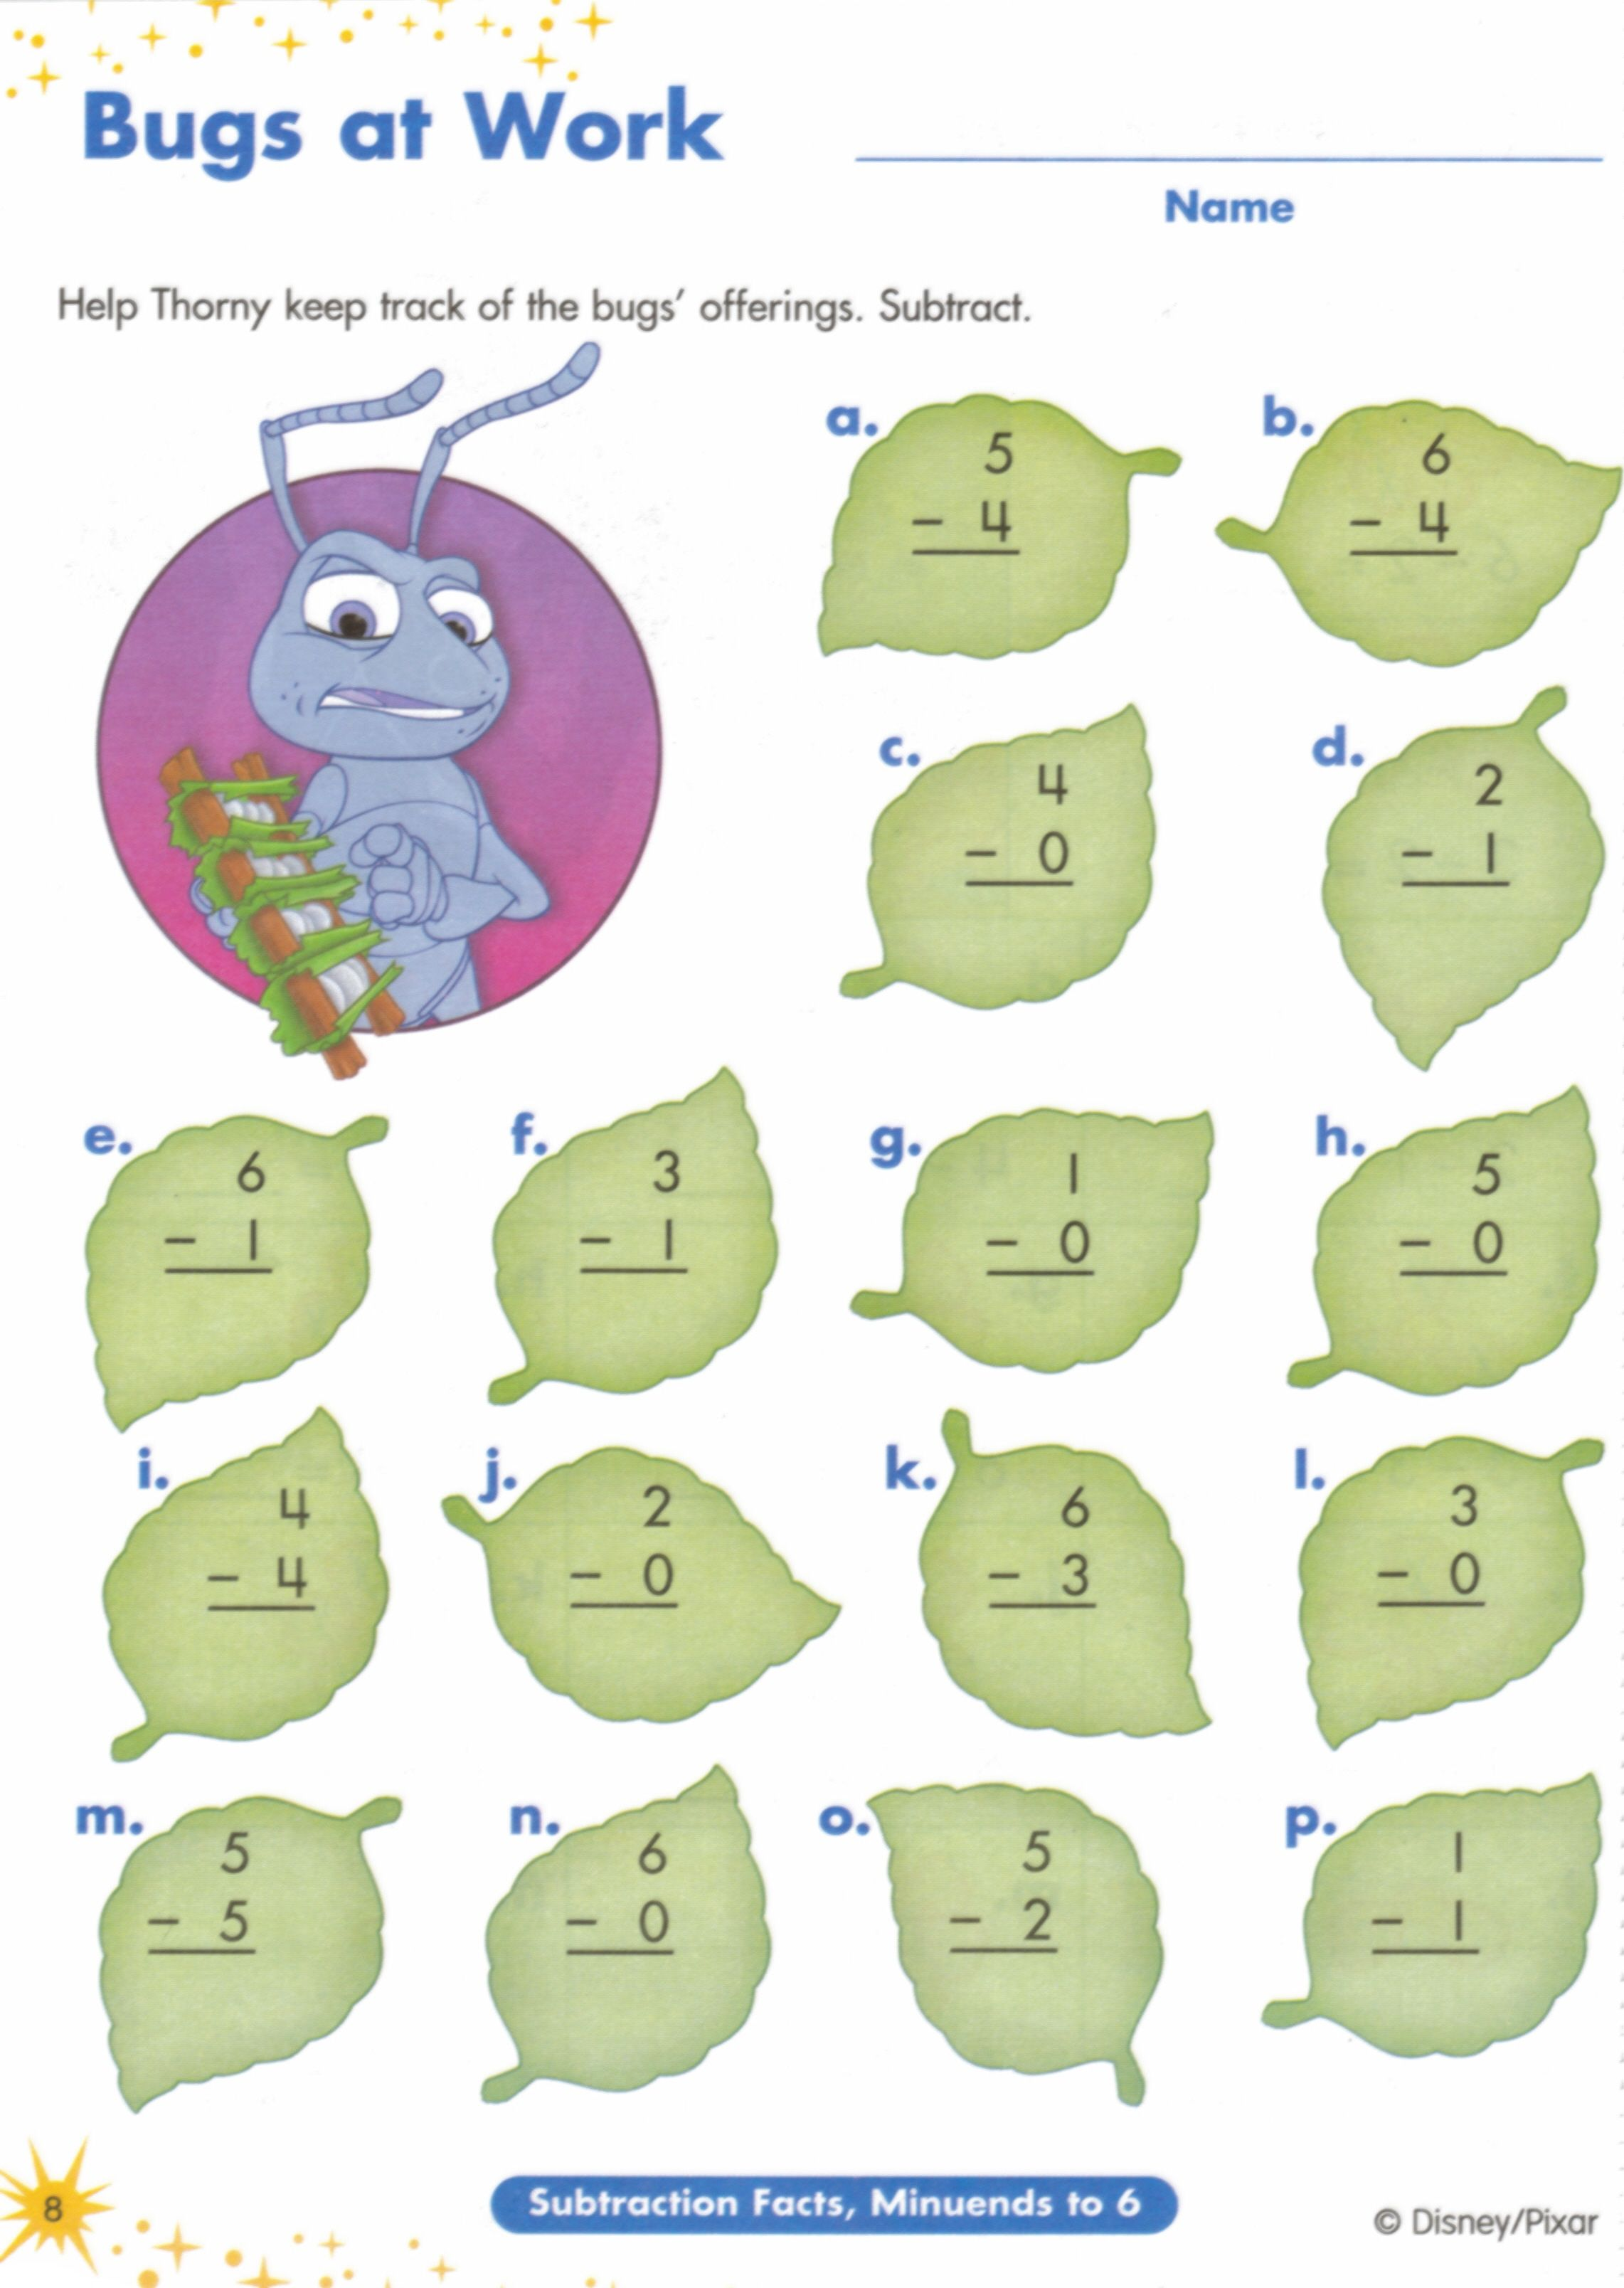 Weirdmailus  Pleasant  Images About Worksheets On Pinterest  Fun Facts For Kids  With Exciting  Images About Worksheets On Pinterest  Fun Facts For Kids Earth Day Worksheets And Jungles With Divine Tell The Time Worksheet Also Worksheet Of Maths For Class  In Addition Compound Words Worksheets For Grade  And Practice Times Tables Worksheets As Well As Who Am I Worksheet For Kids Additionally Straight Line Worksheet From Pinterestcom With Weirdmailus  Exciting  Images About Worksheets On Pinterest  Fun Facts For Kids  With Divine  Images About Worksheets On Pinterest  Fun Facts For Kids Earth Day Worksheets And Jungles And Pleasant Tell The Time Worksheet Also Worksheet Of Maths For Class  In Addition Compound Words Worksheets For Grade  From Pinterestcom